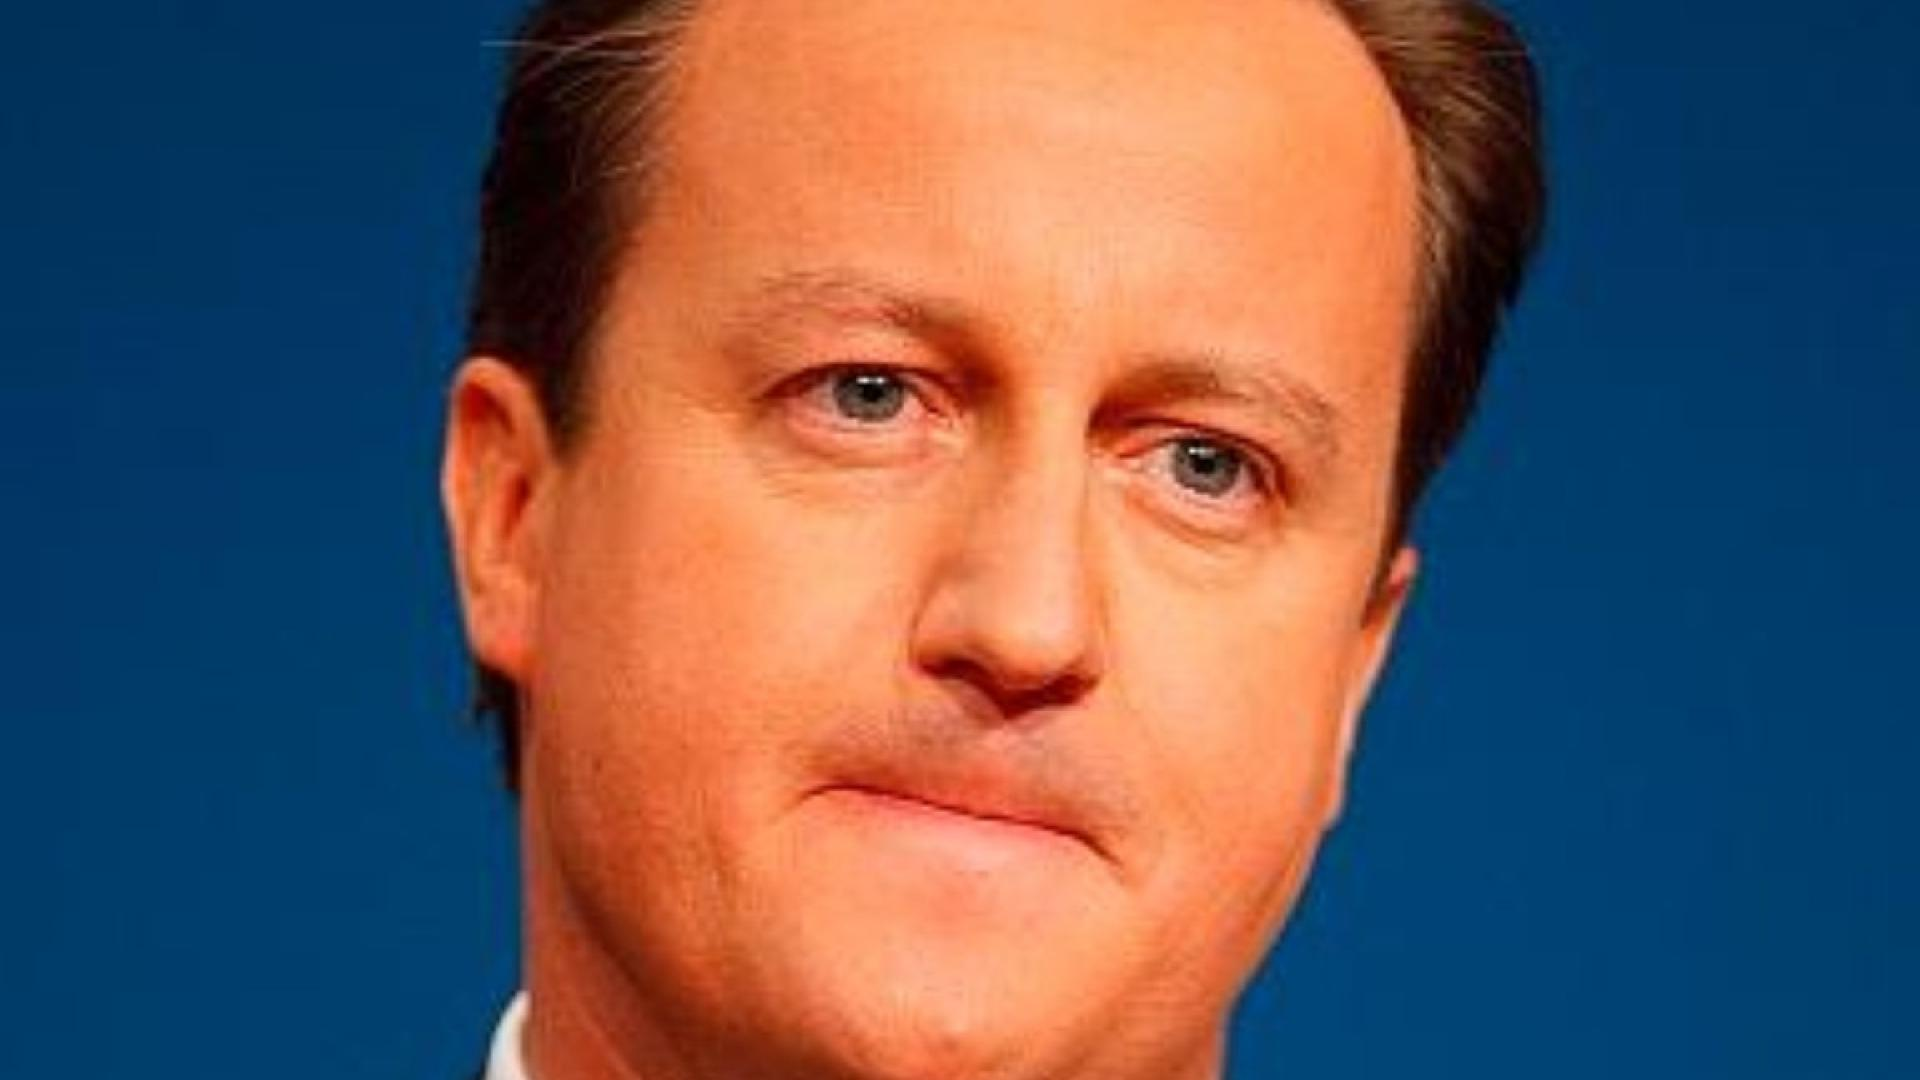 Prime minister warned against extra dementia testing